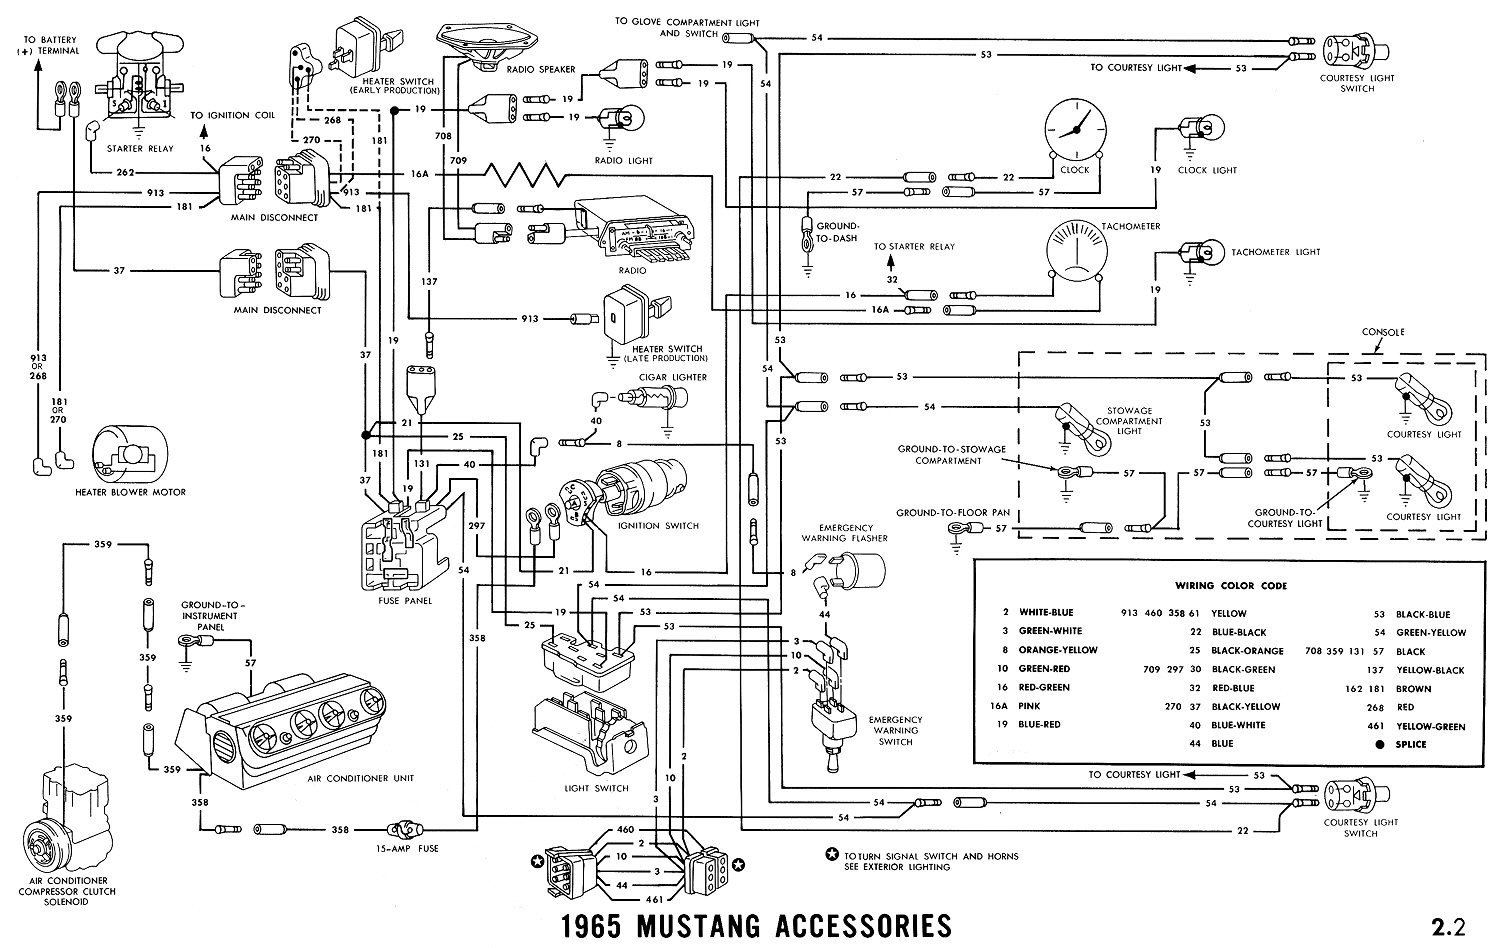 1965i 1965 mustang wiring diagrams average joe restoration 1965 mustang engine wiring harness at virtualis.co